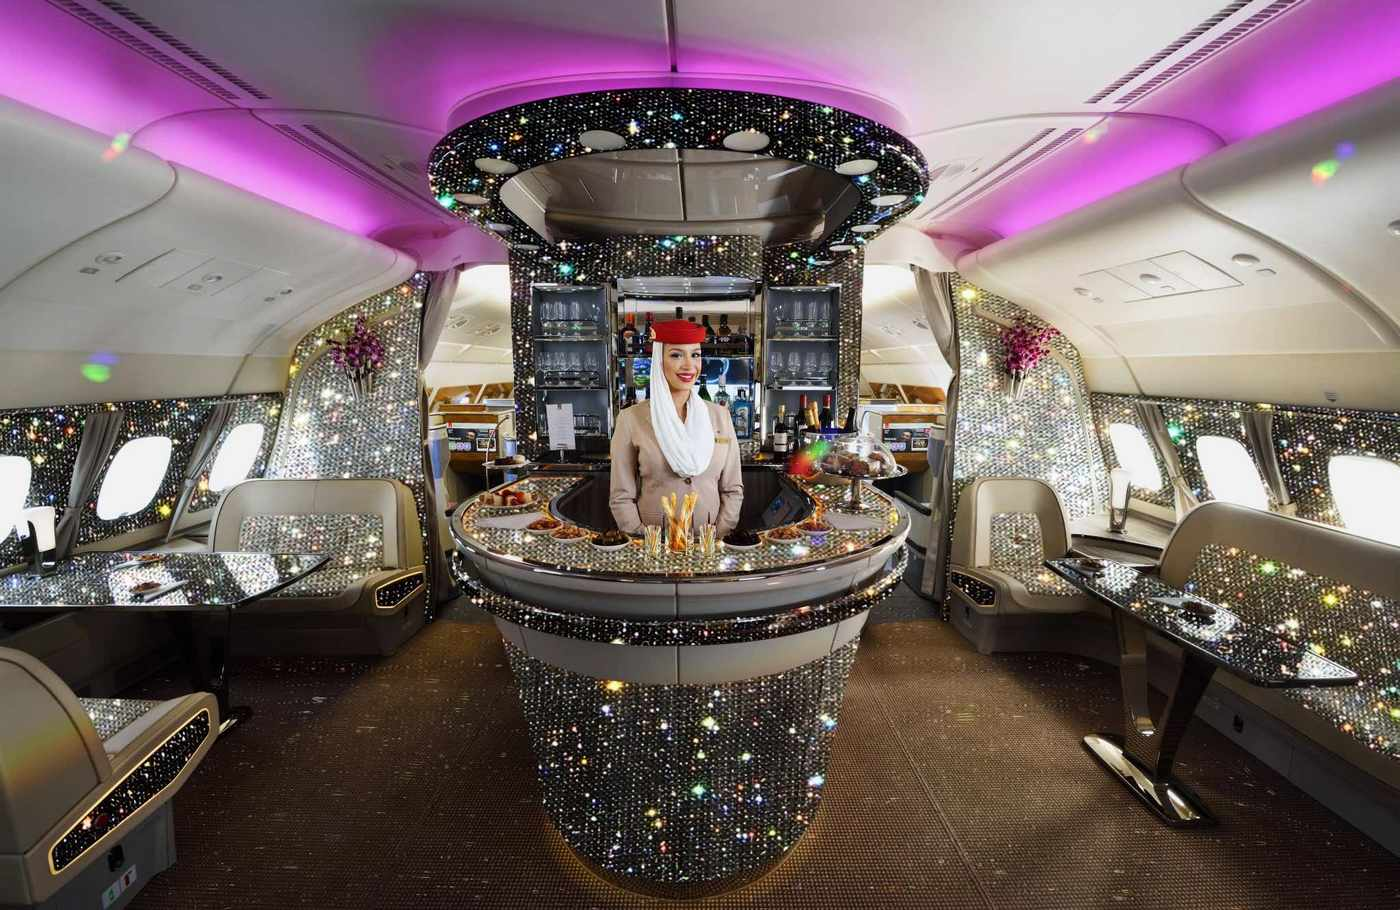 Take A Look At The Diamond Encrusted Onboard Lounge Of The